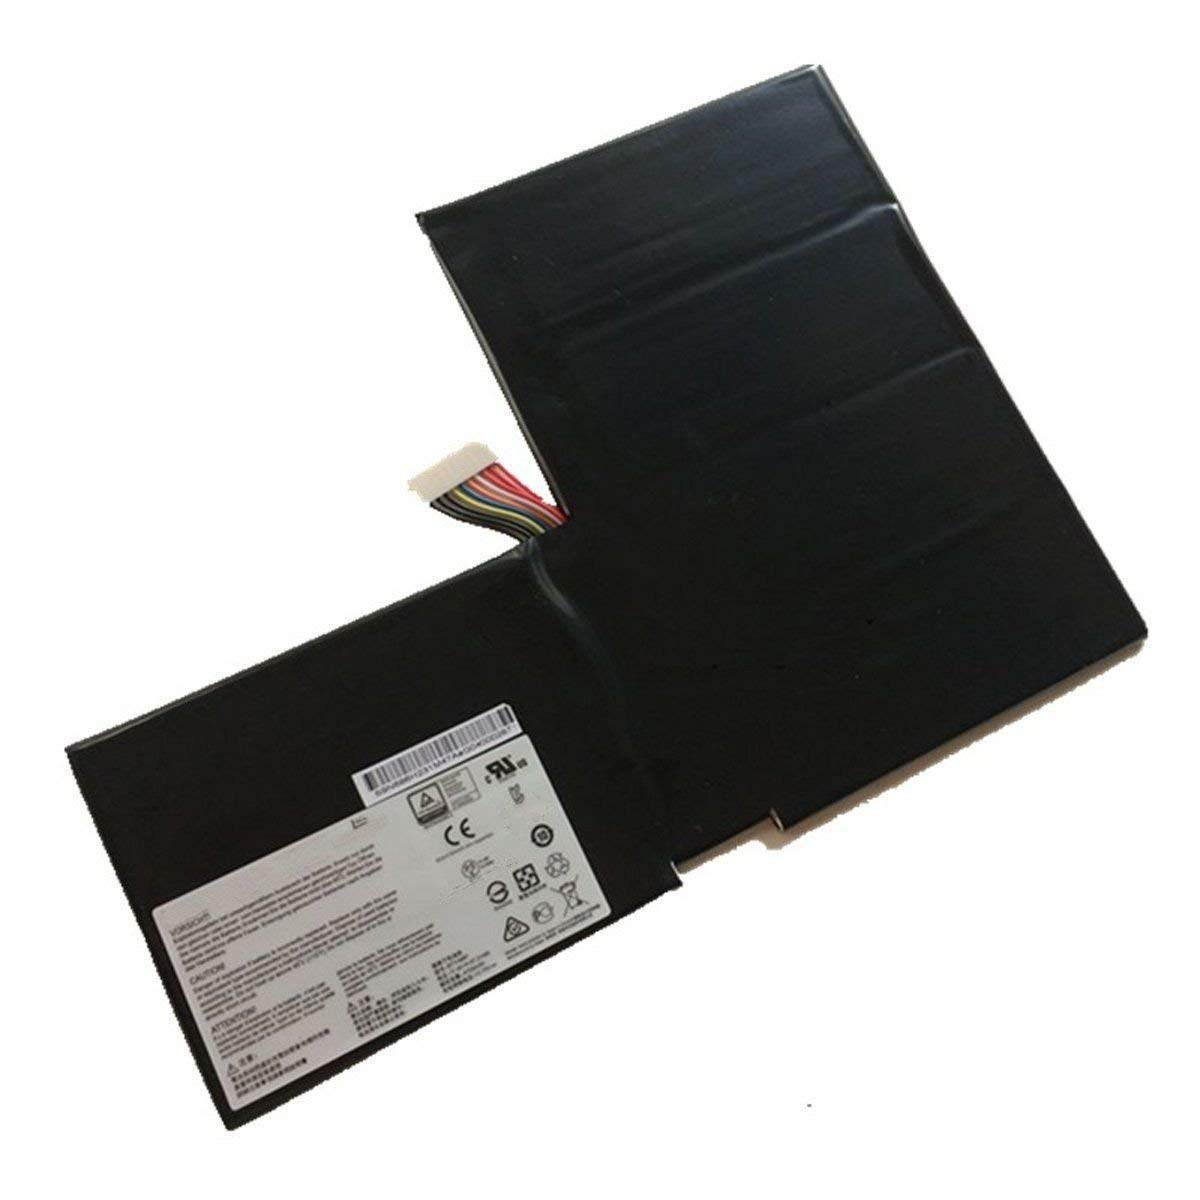 11.4V 52.89Wh 4640mAh Hubei BTY-M6F MS-16H2 3ICP5//40//99-2 Replacement Laptop Battery For MSI GS60 2PL 2PC 2PE 2QC 2QD 6QE 6QC PX60 16H2 2QE 2pc-003 6QC-257XCN 2QE-215CN2QE-215CN 6QC-070XCN